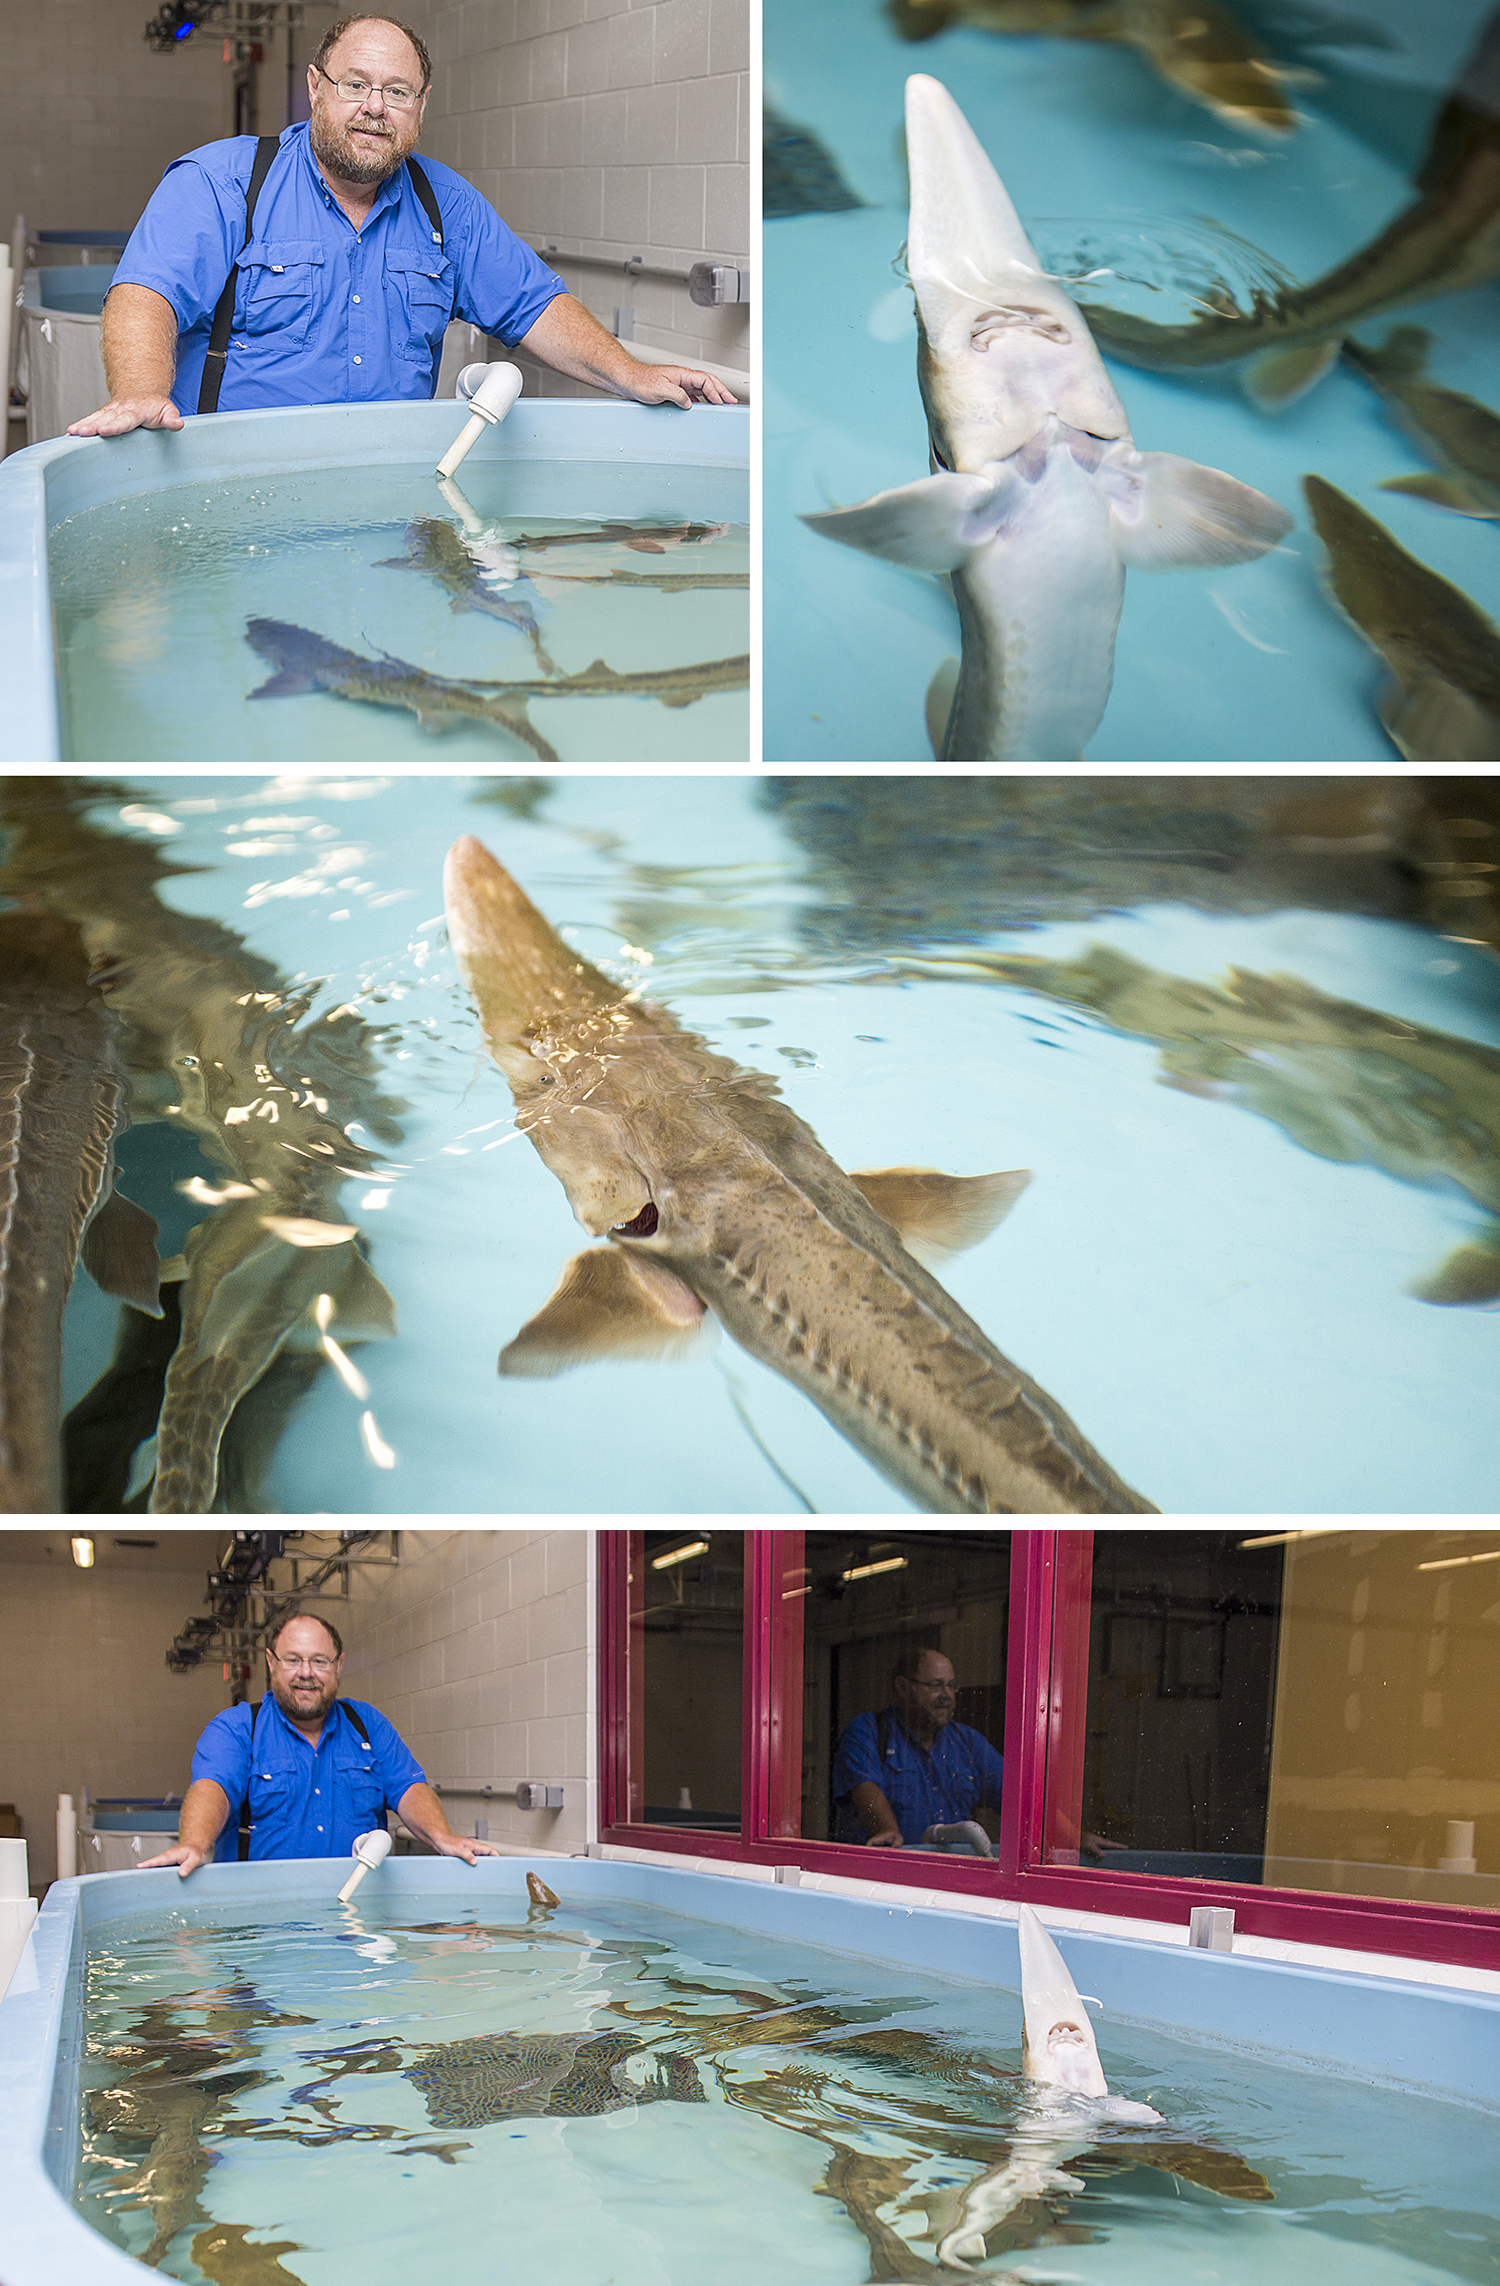 Exploration at SIU's Center for Fisheries, Aquaculture and Aquatic Sciences